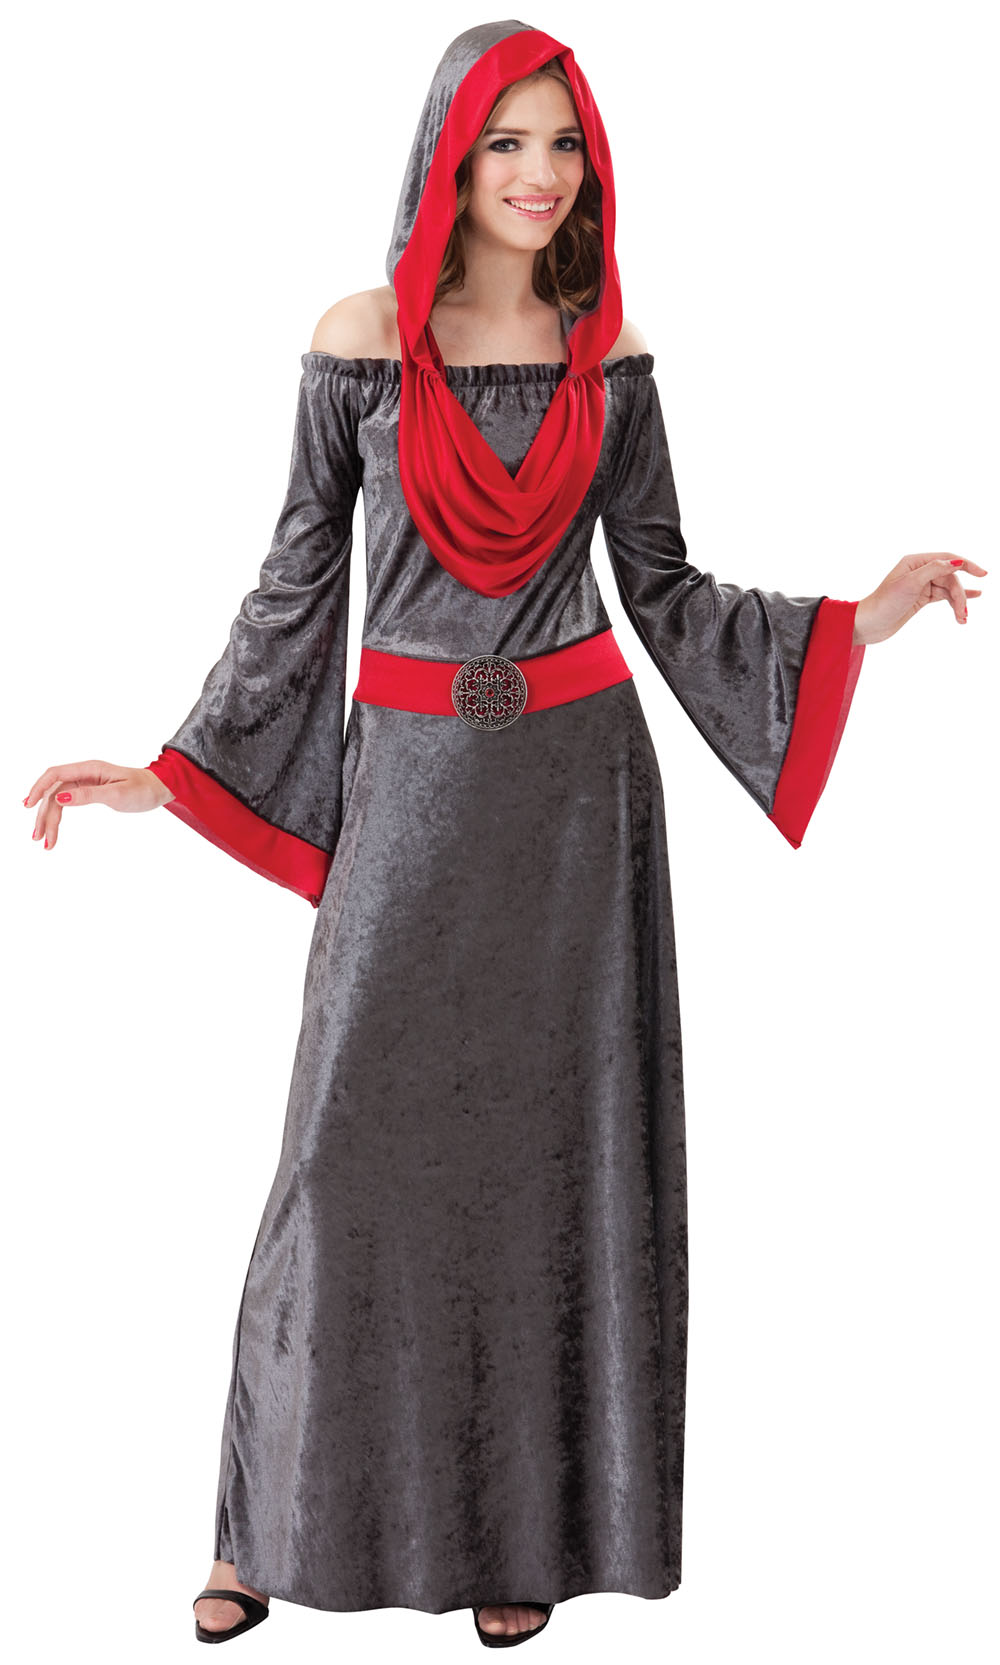 Ladies Death Grim Reaper Halloween Fancy Dress Costume Womens Outfit UK 10-14